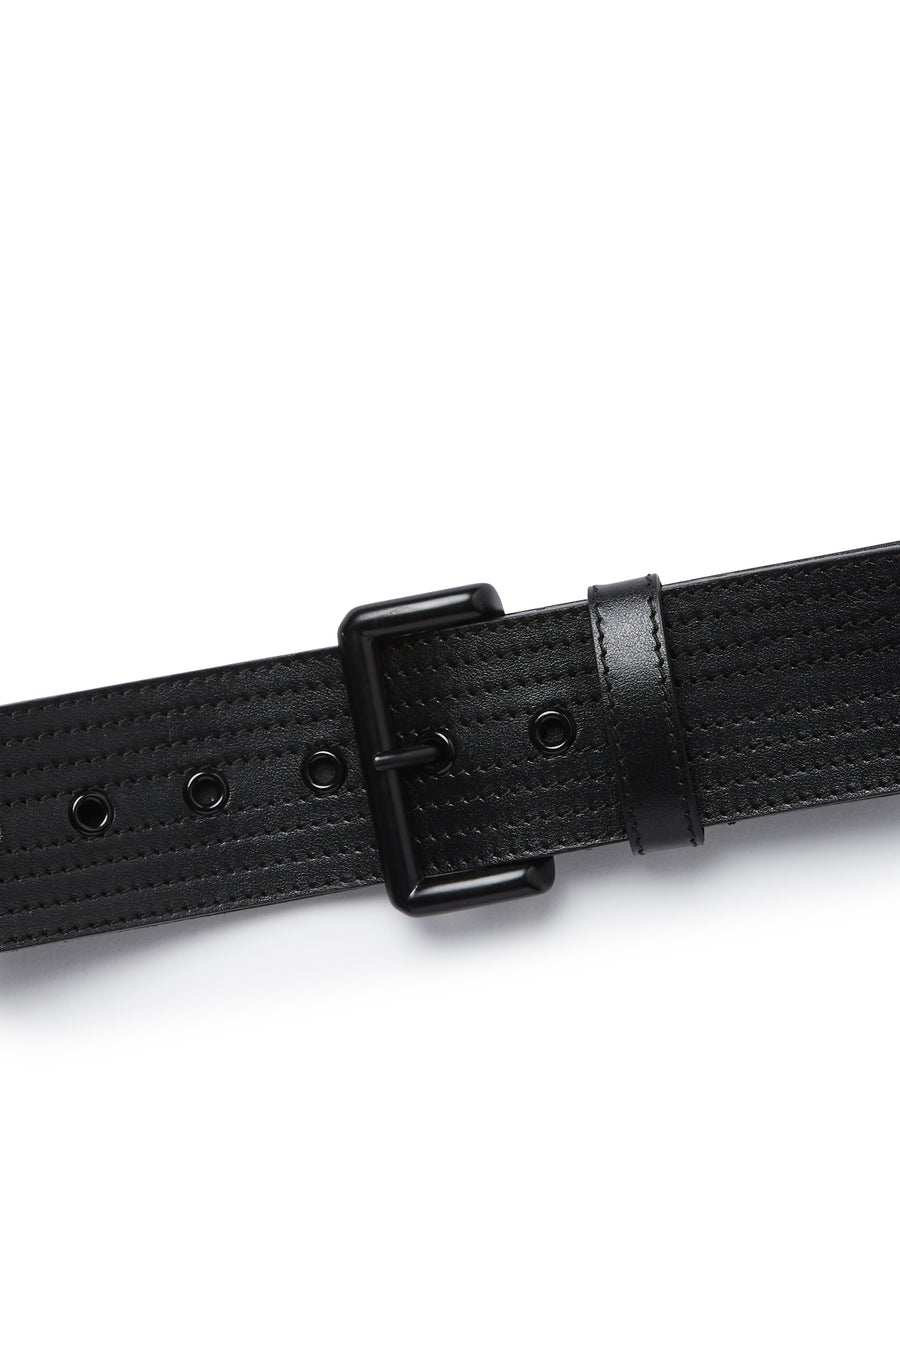 Multi Stitched Belt with Powder Coated Hardware, Made in Italy. Band width of 5cm. Color Black Nero